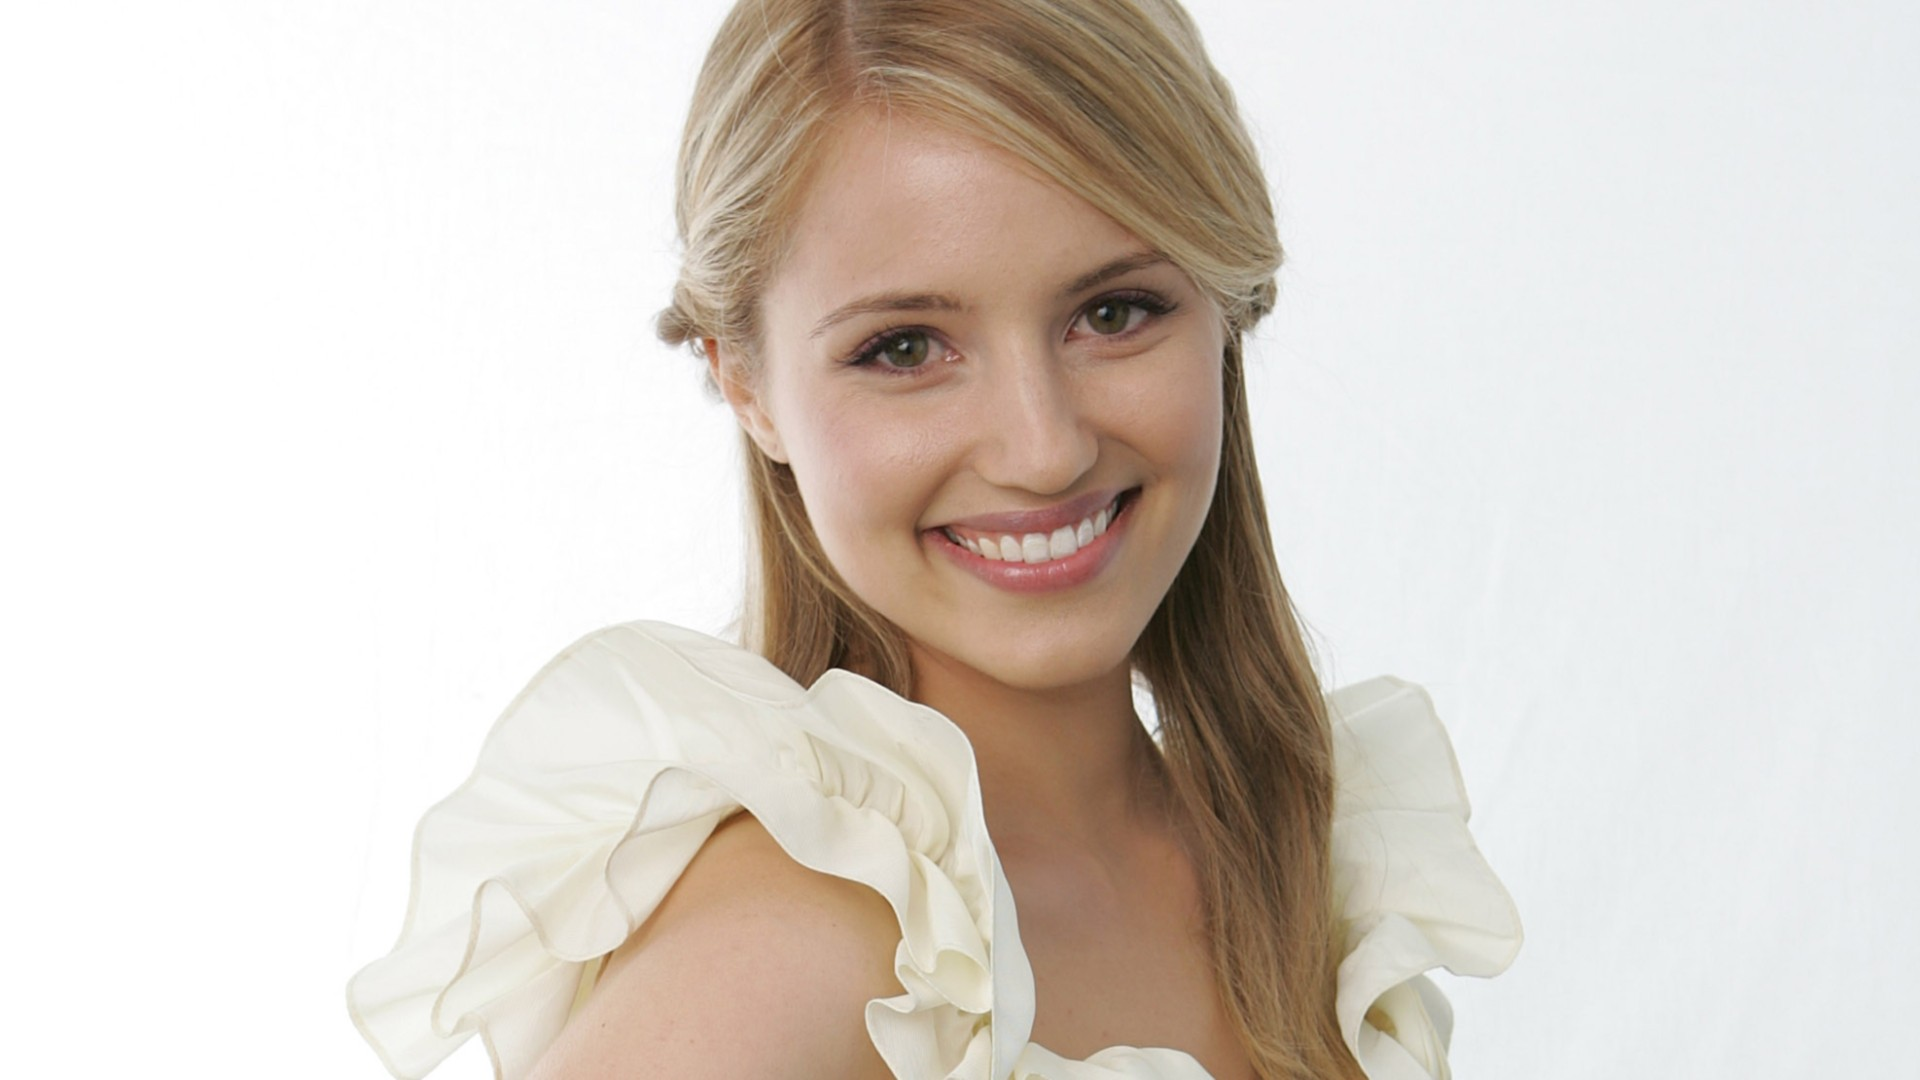 1920x1080 - Dianna Agron Wallpapers 23